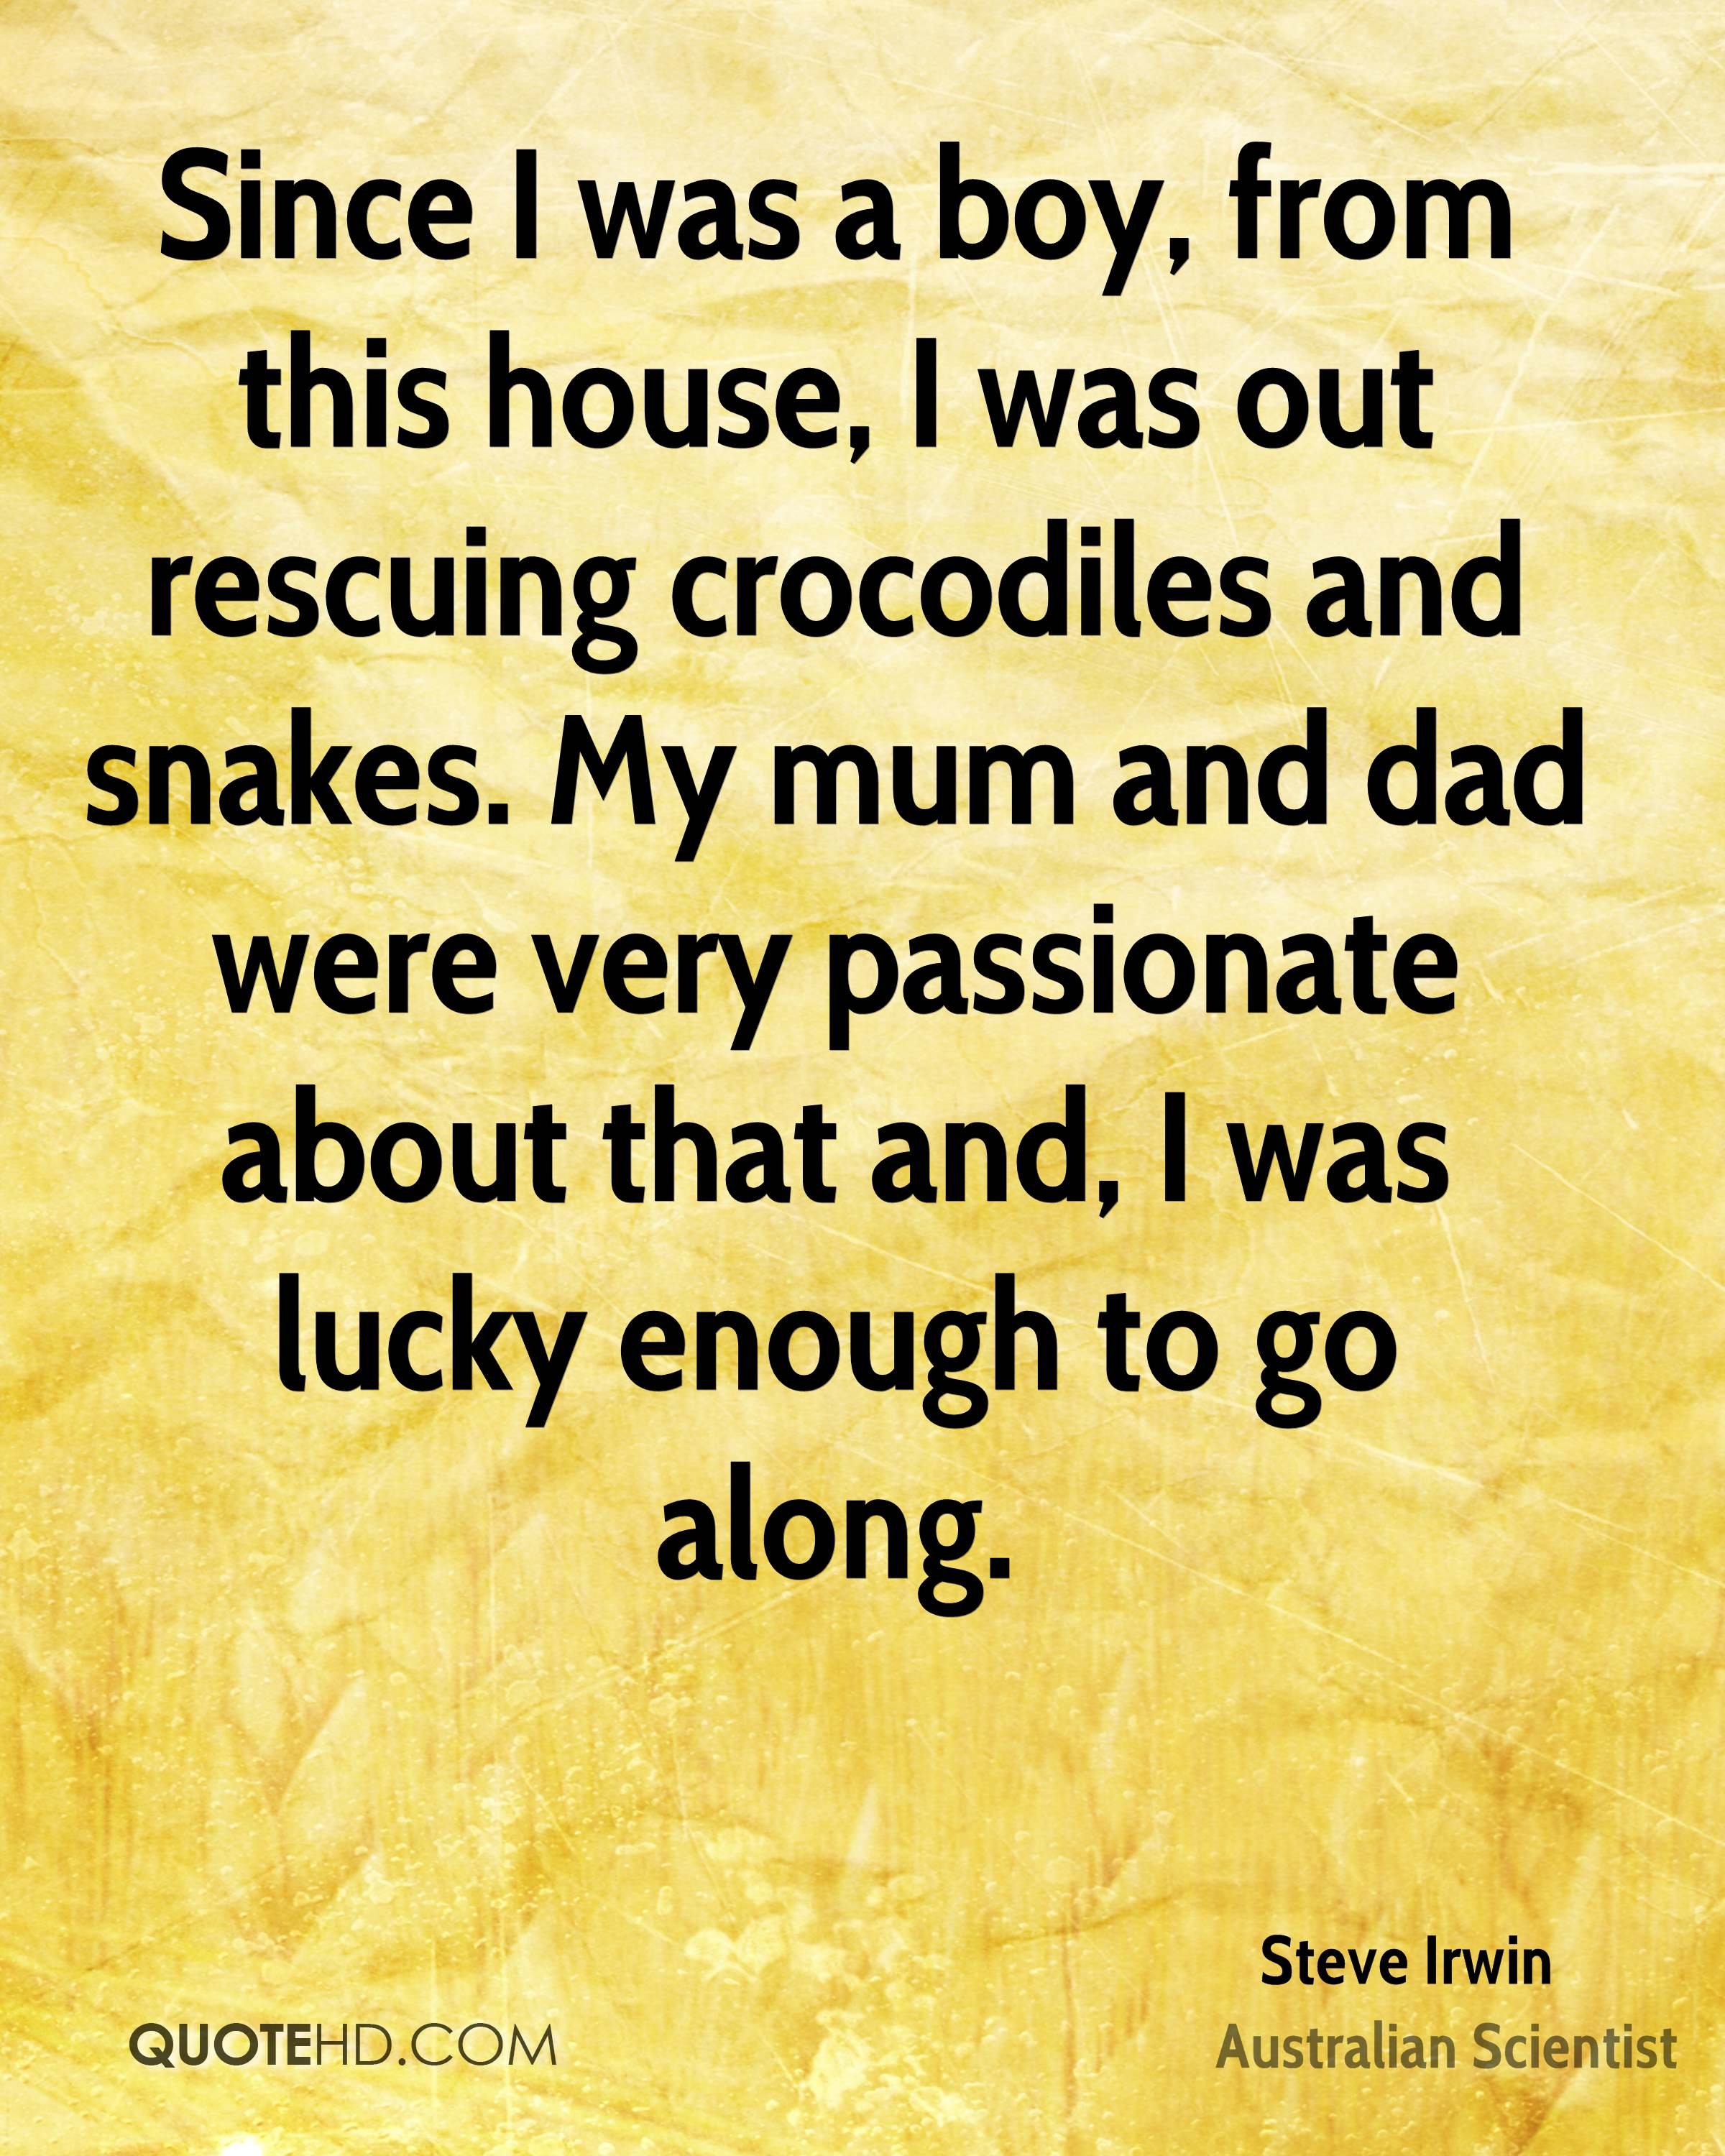 Since I was a boy, from this house, I was out rescuing crocodiles and snakes. My mum and dad were very passionate about that and, I was lucky enough to go along.